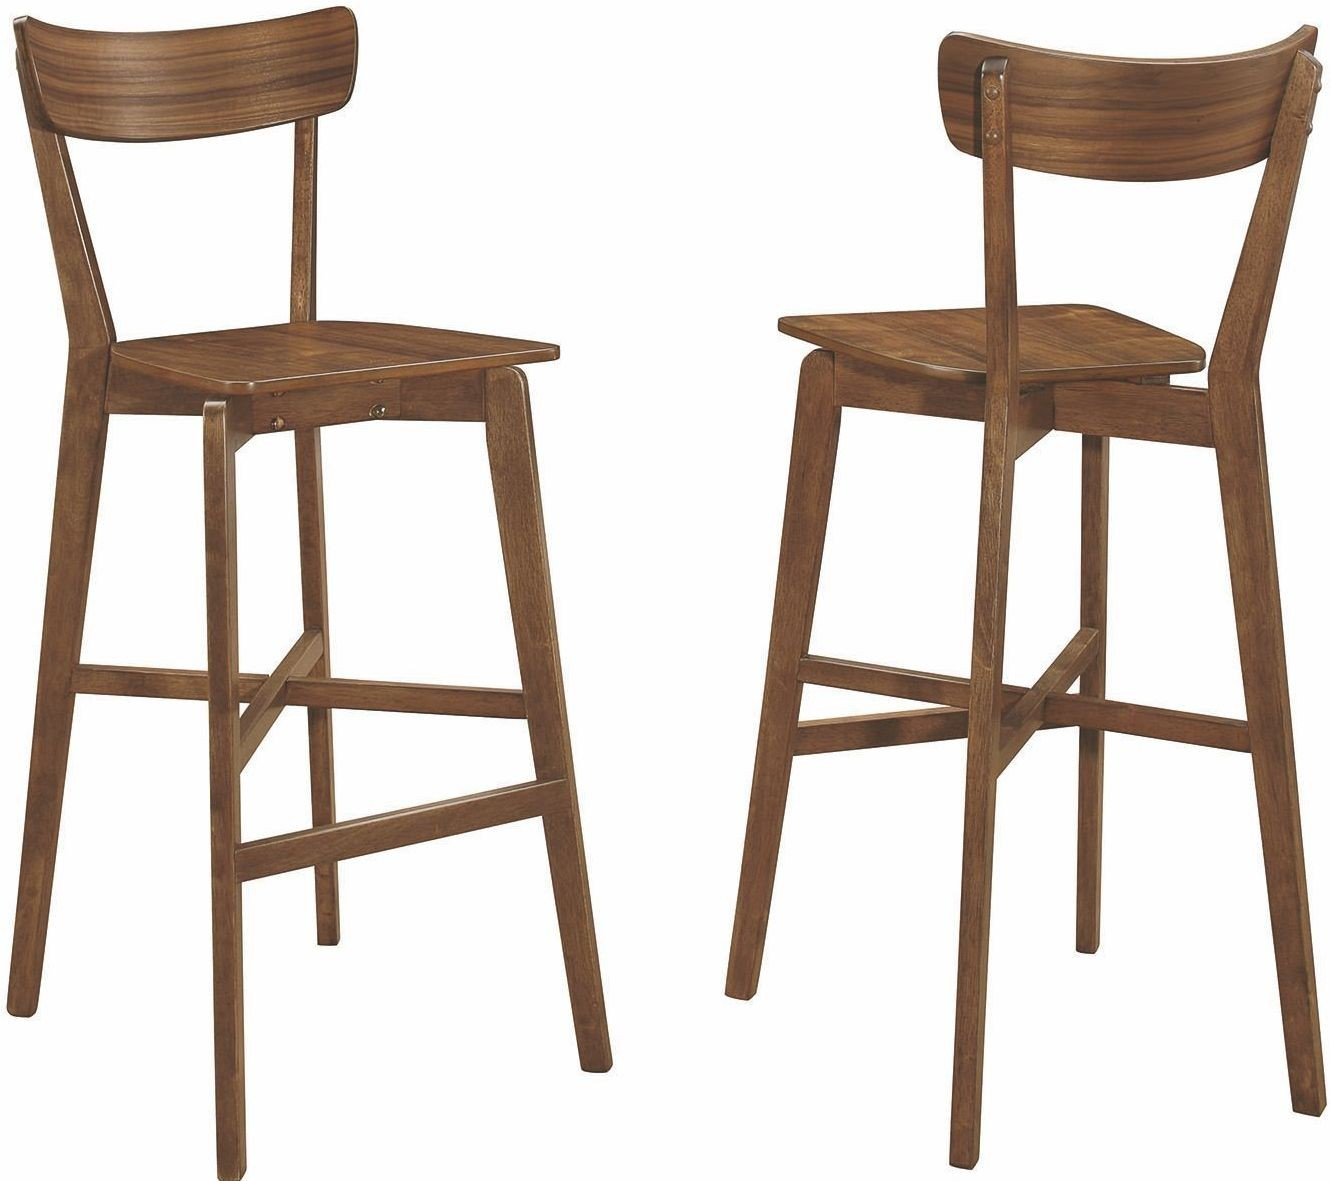 Walnut Bar Stools: Rec Room Walnut Bar Stool Set Of 2, 101449, Coaster Furniture